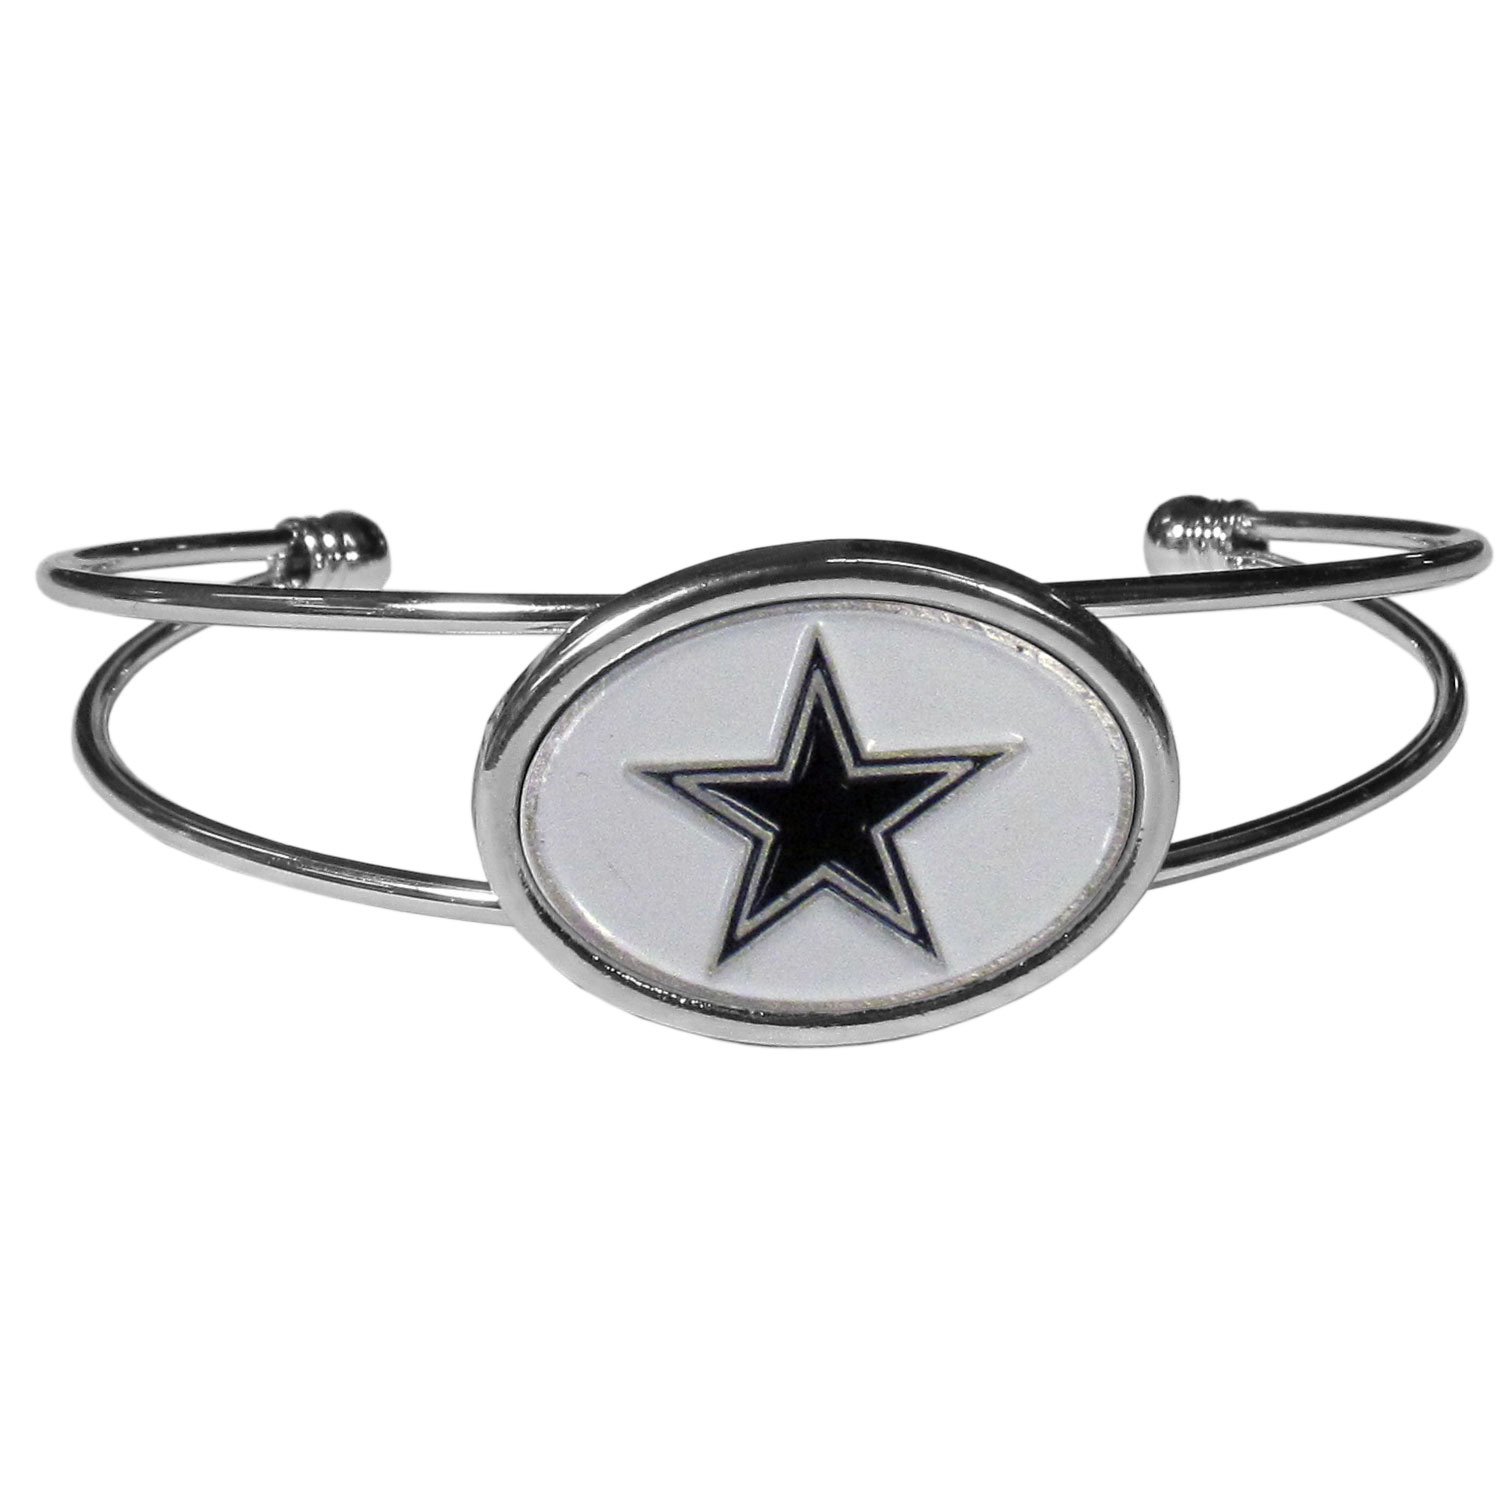 Dallas Cowboys Cuff Bracelet - These comfortable and fashionable double-bar cuff bracelets feature a 1 inch metal Dallas Cowboys inset logo with enameled detail.